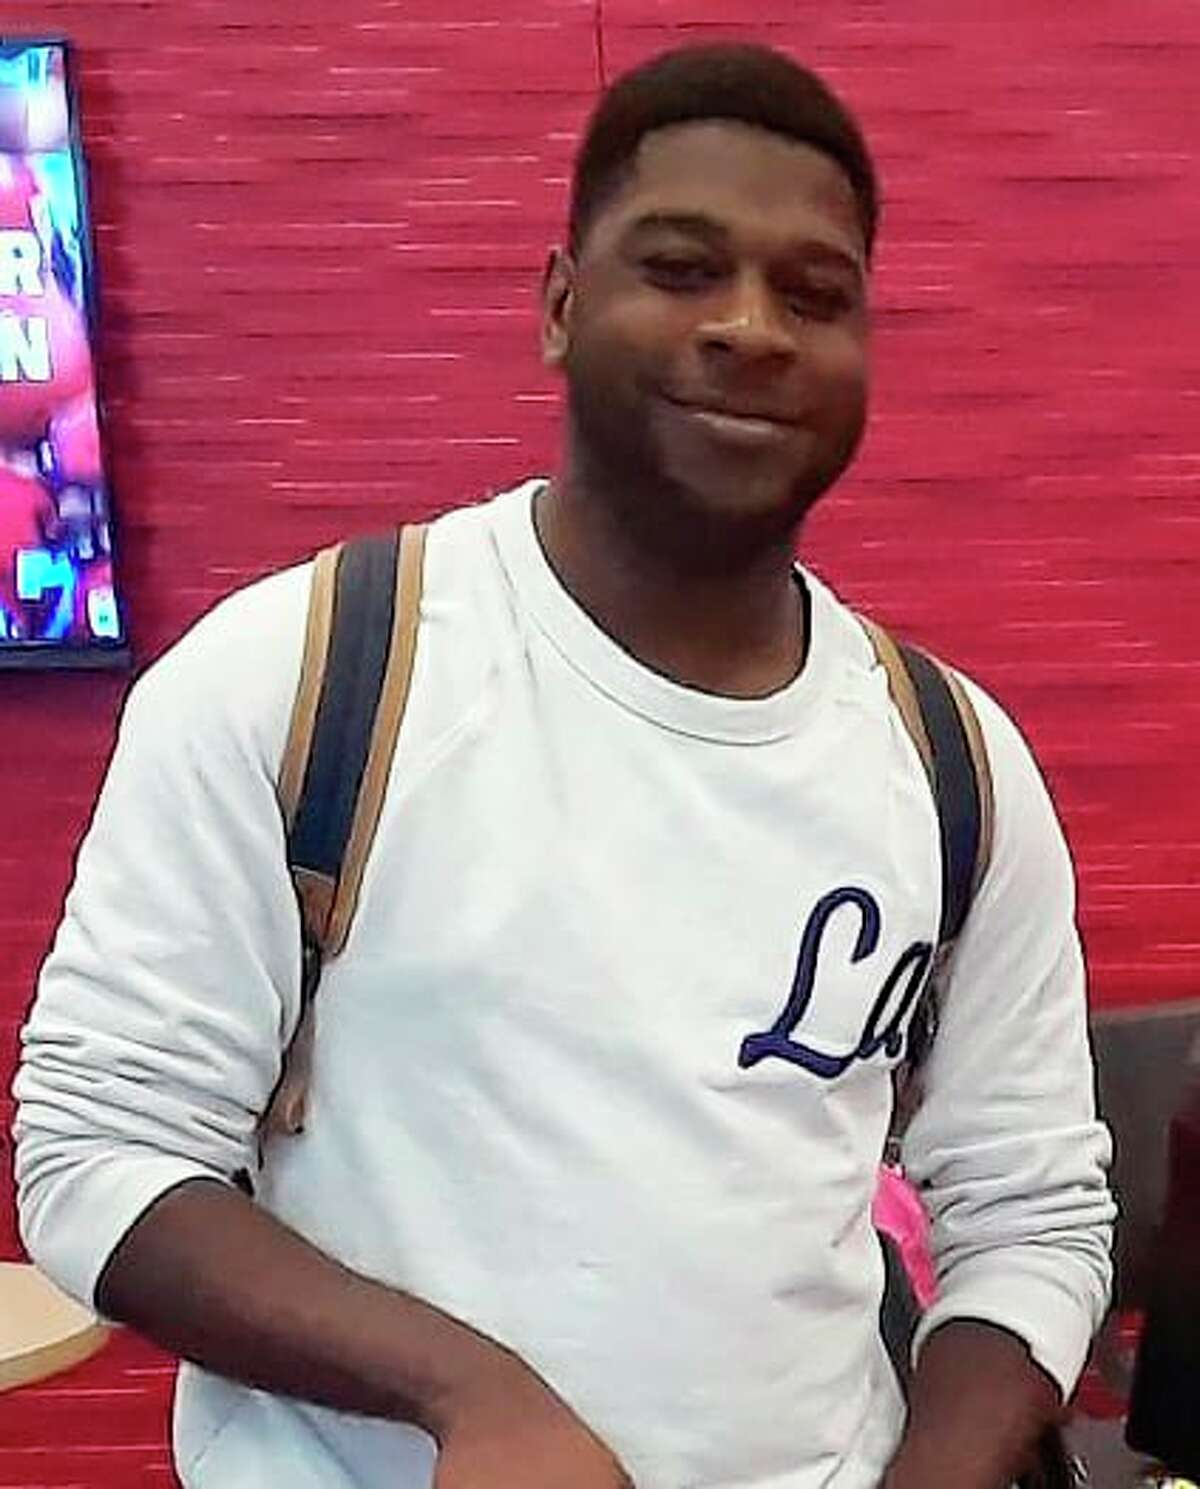 Malik Kingsby was described as an involved and beloved student leader who helped LGBTQIA+ students of color and brought so much warmth and joy to the Ferris community. (Courtesy/JohnSmith)